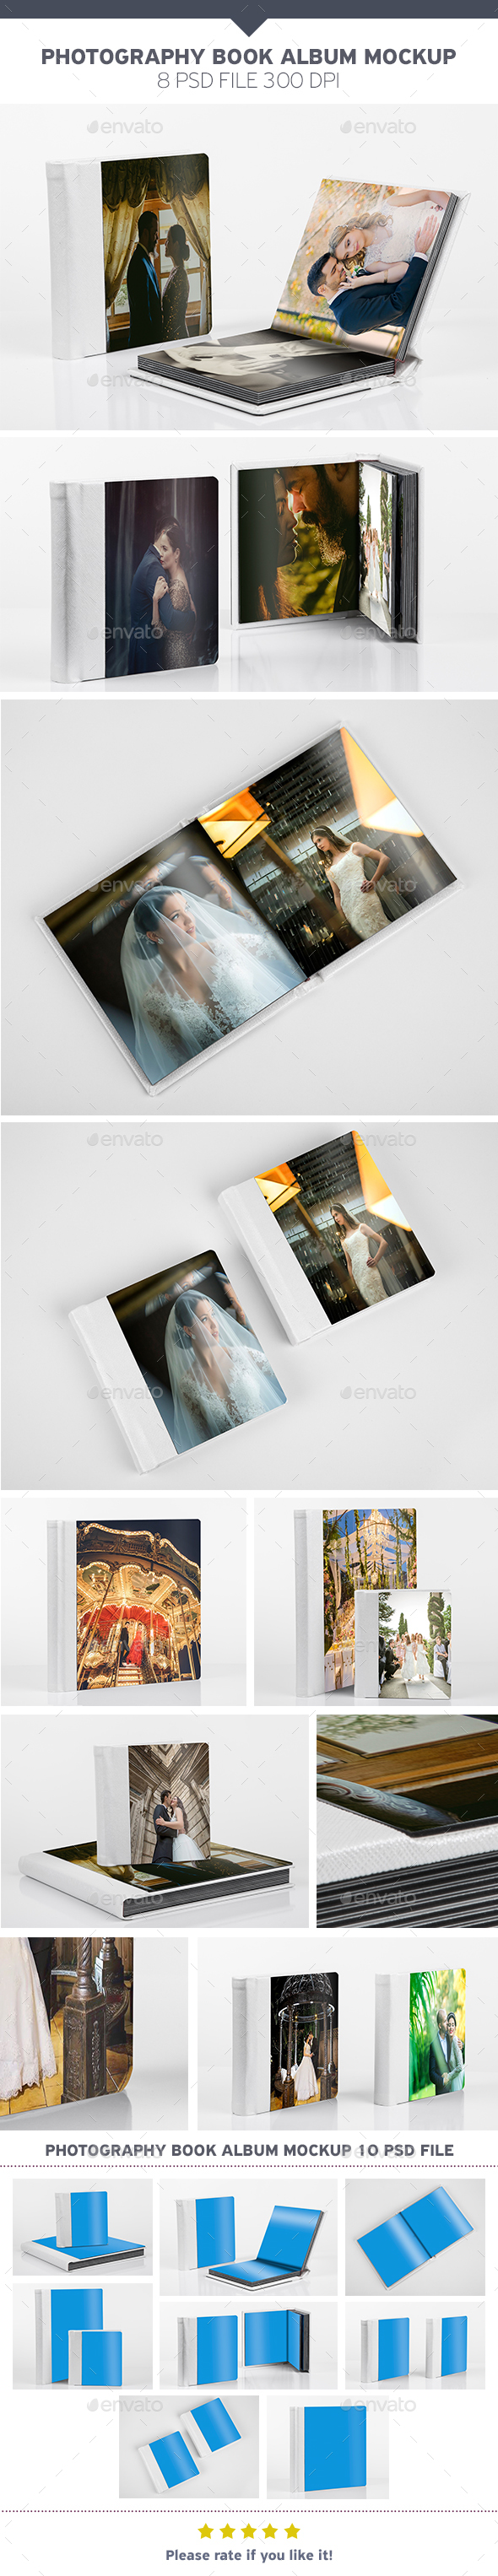 Photography Book Album Mockup - Product Mock-Ups Graphics